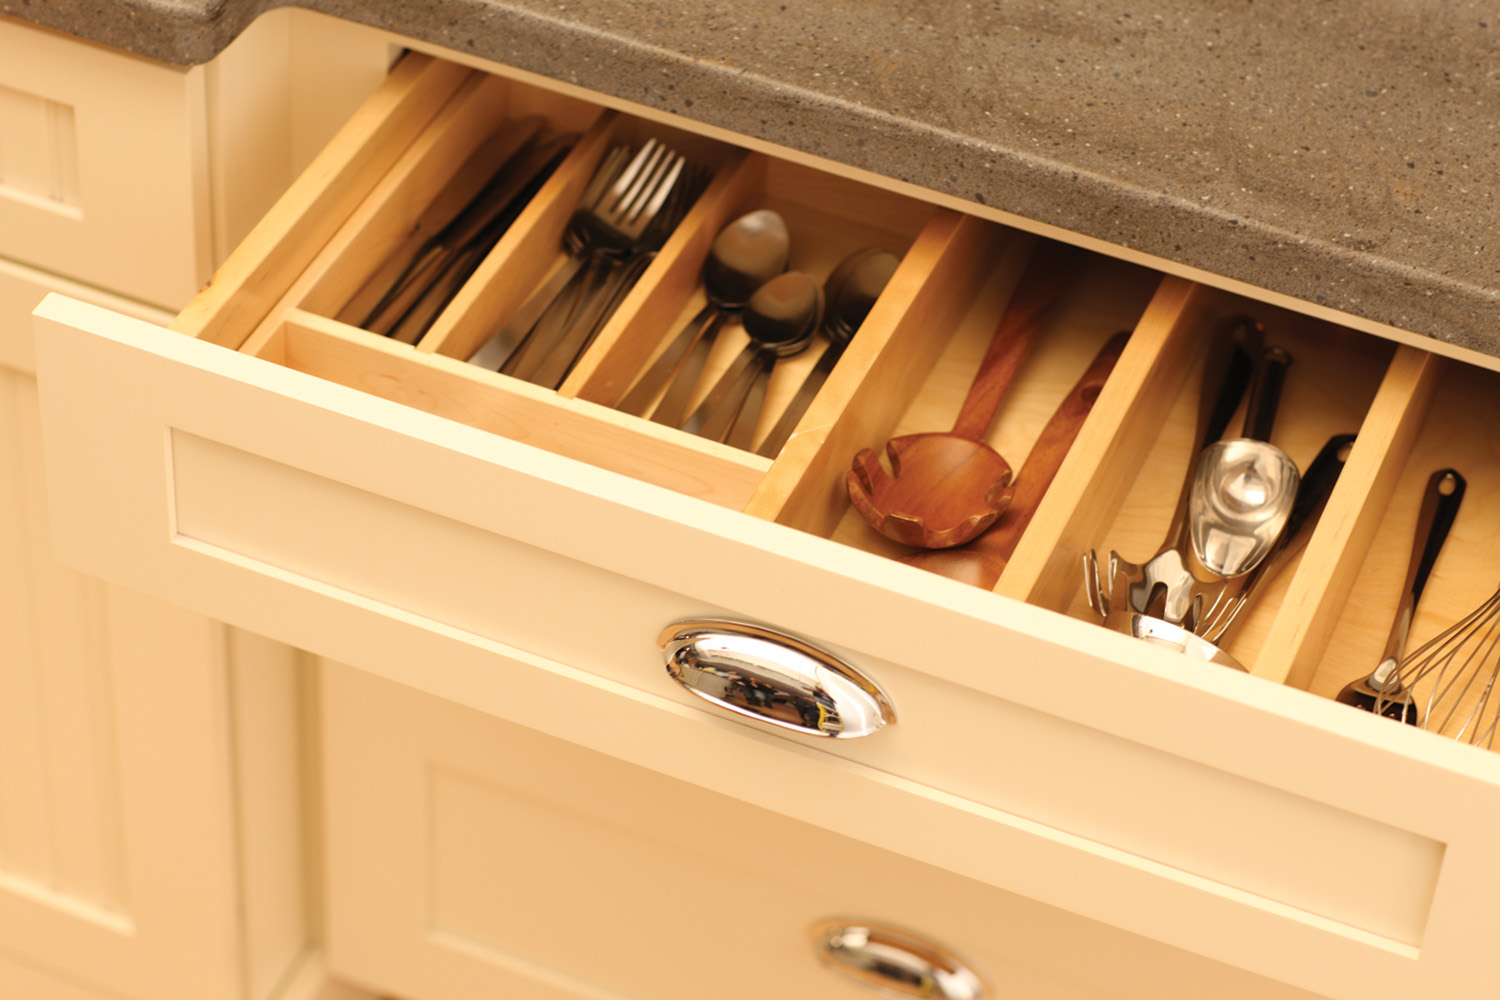 Cutlery Tray and Partitioned Storage Drawer